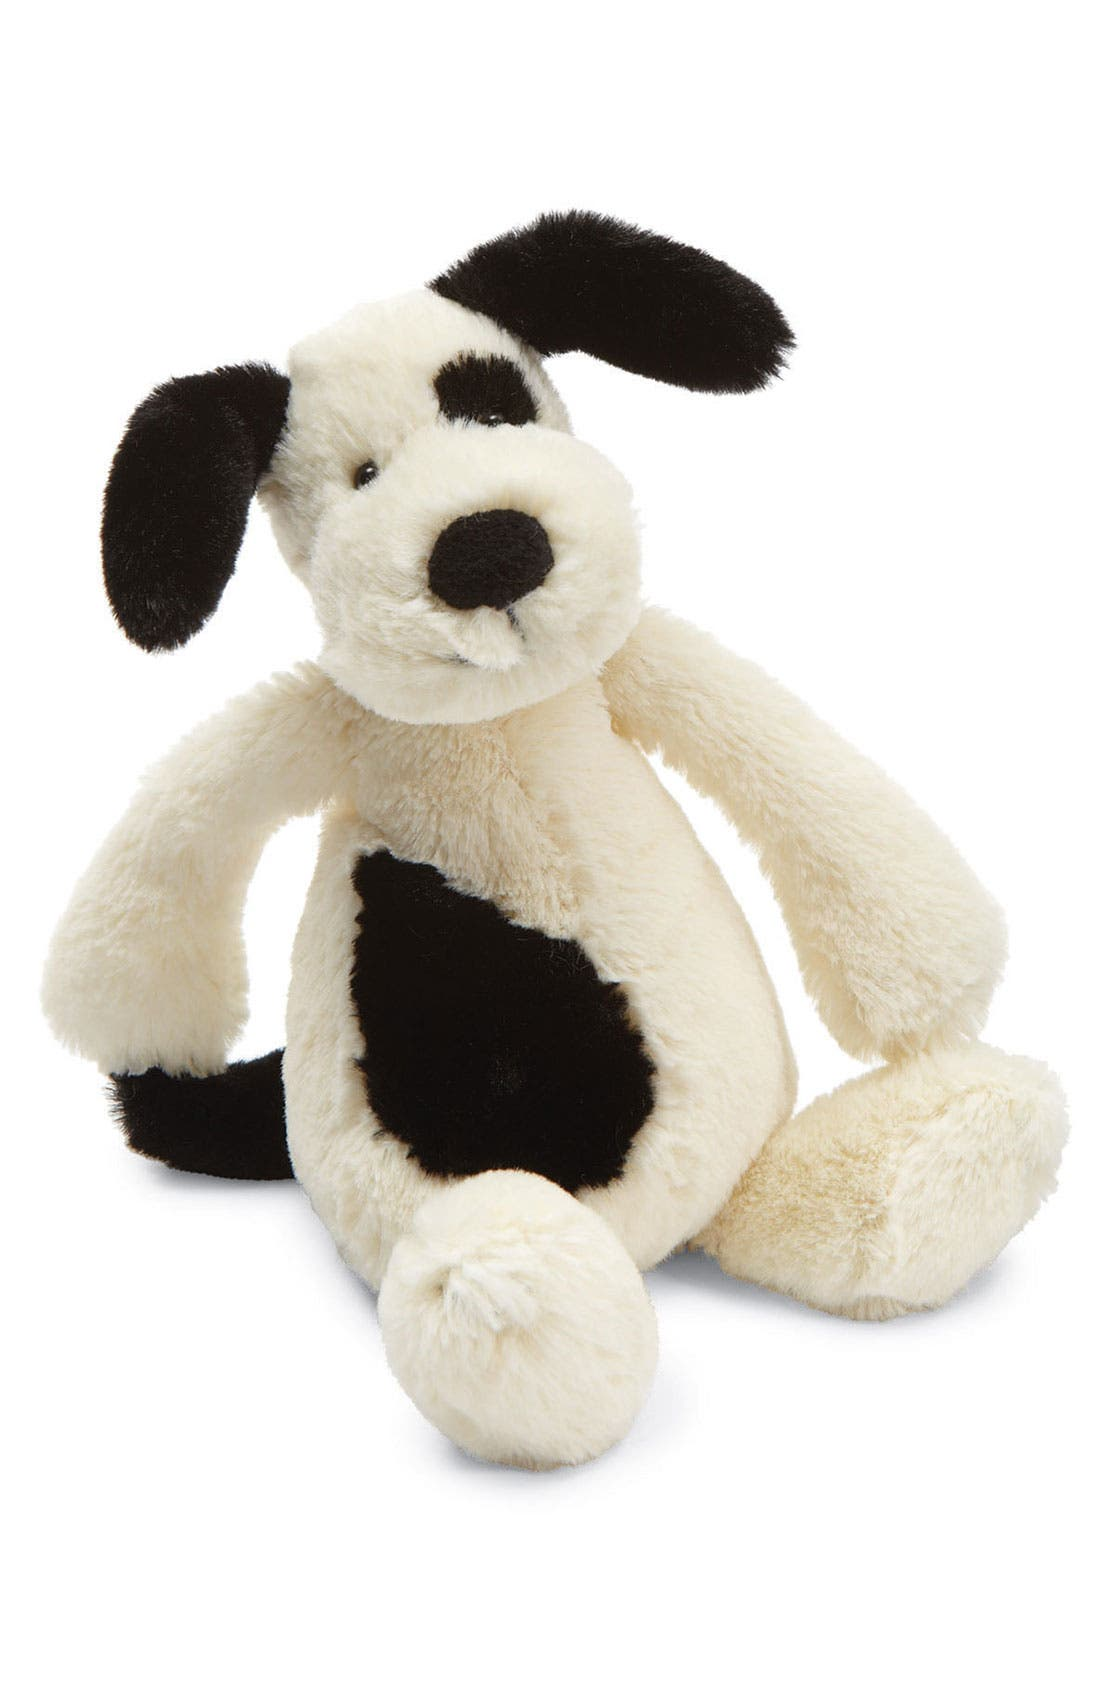 Alternate Image 1 Selected - Jellycat 'Bashful' Puppy Rattle